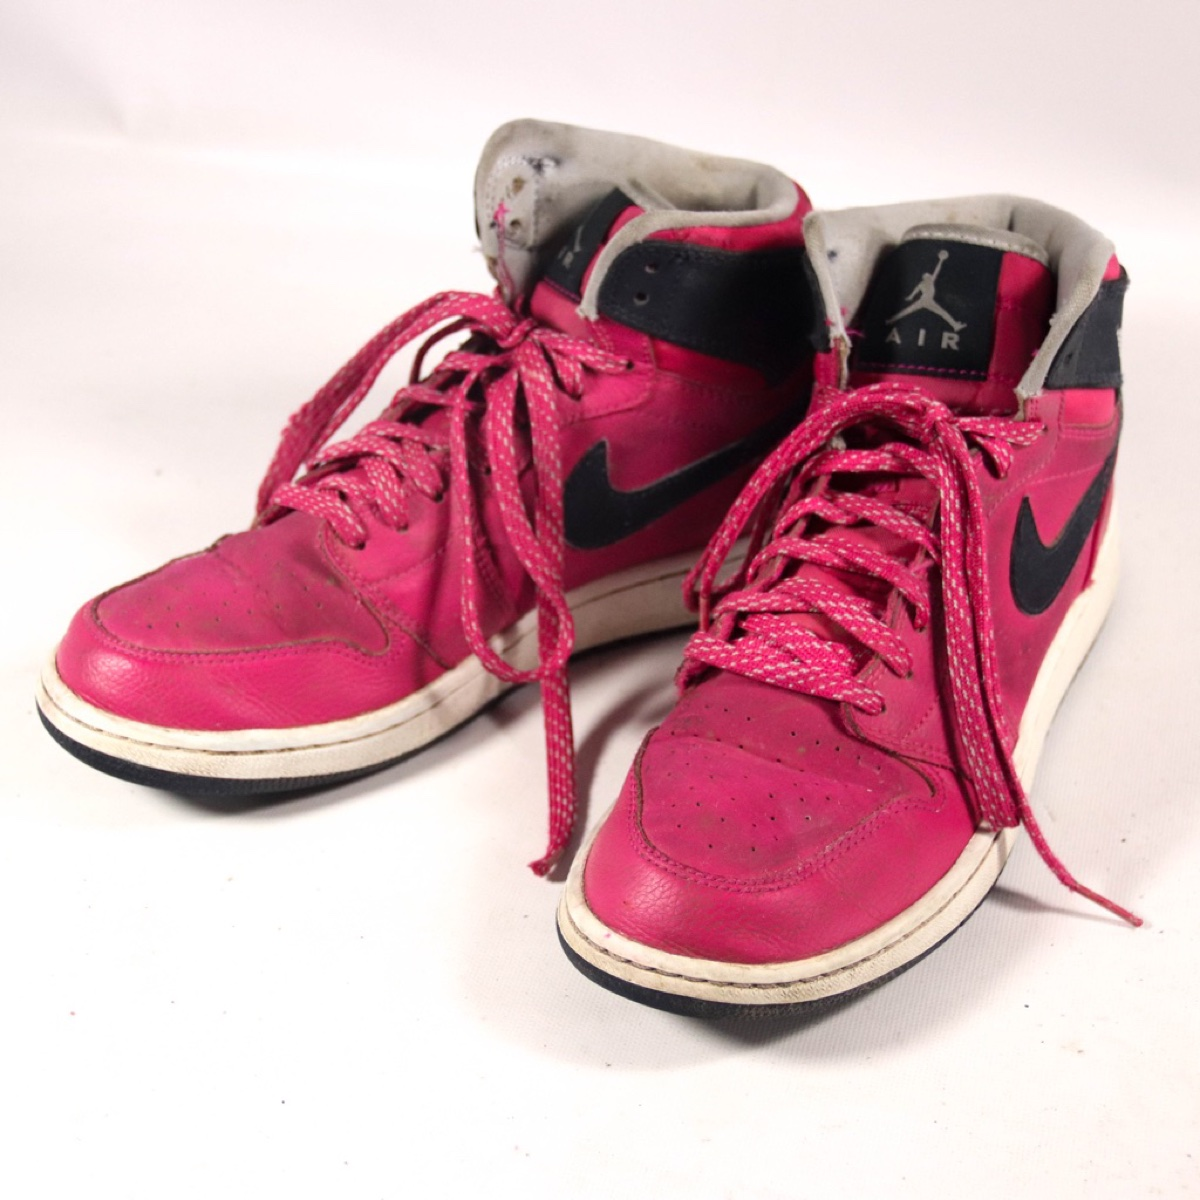 Nike Air Jordan 1 Retro High Top Size 6.5 Youth Pink Sneakers Trainers Shoes (332148-609)